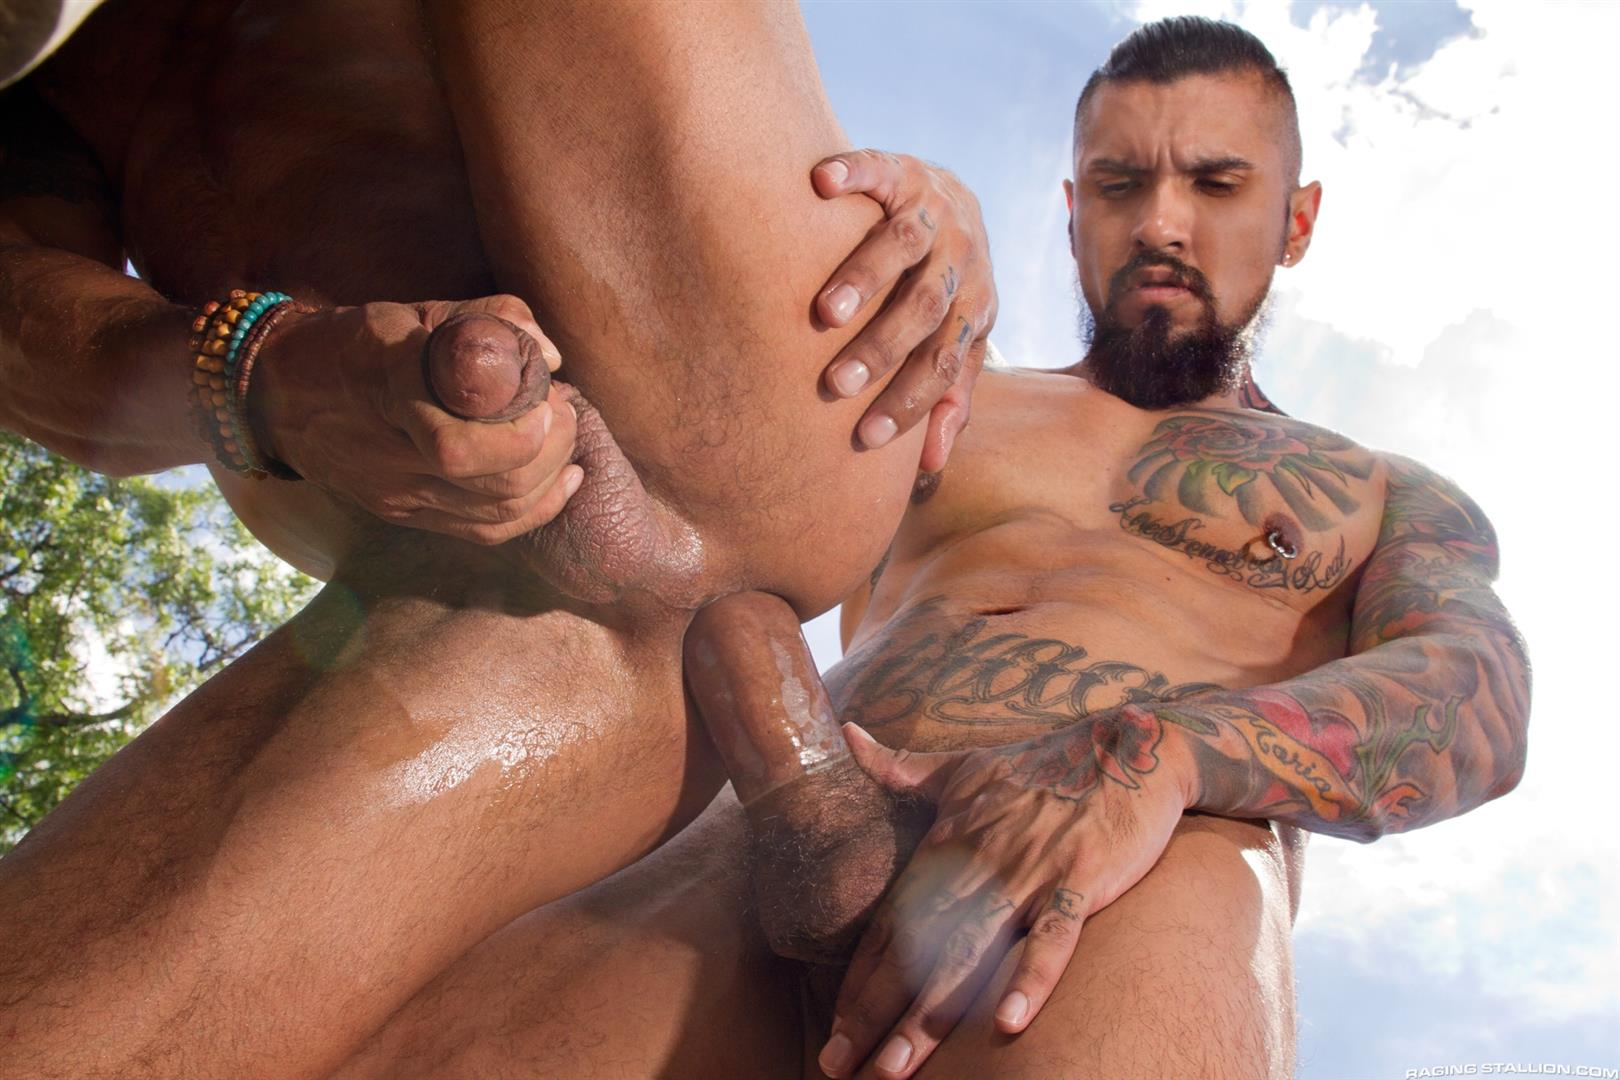 Raging-Stallion-Boomer-Banks-and-David-Benjamin-Big-Uncut-Cock-Fucking-Amateur-Gay-Porn-12 Boomer Banks Fucking In The Back Of A Pickup With His Big Uncut Cock